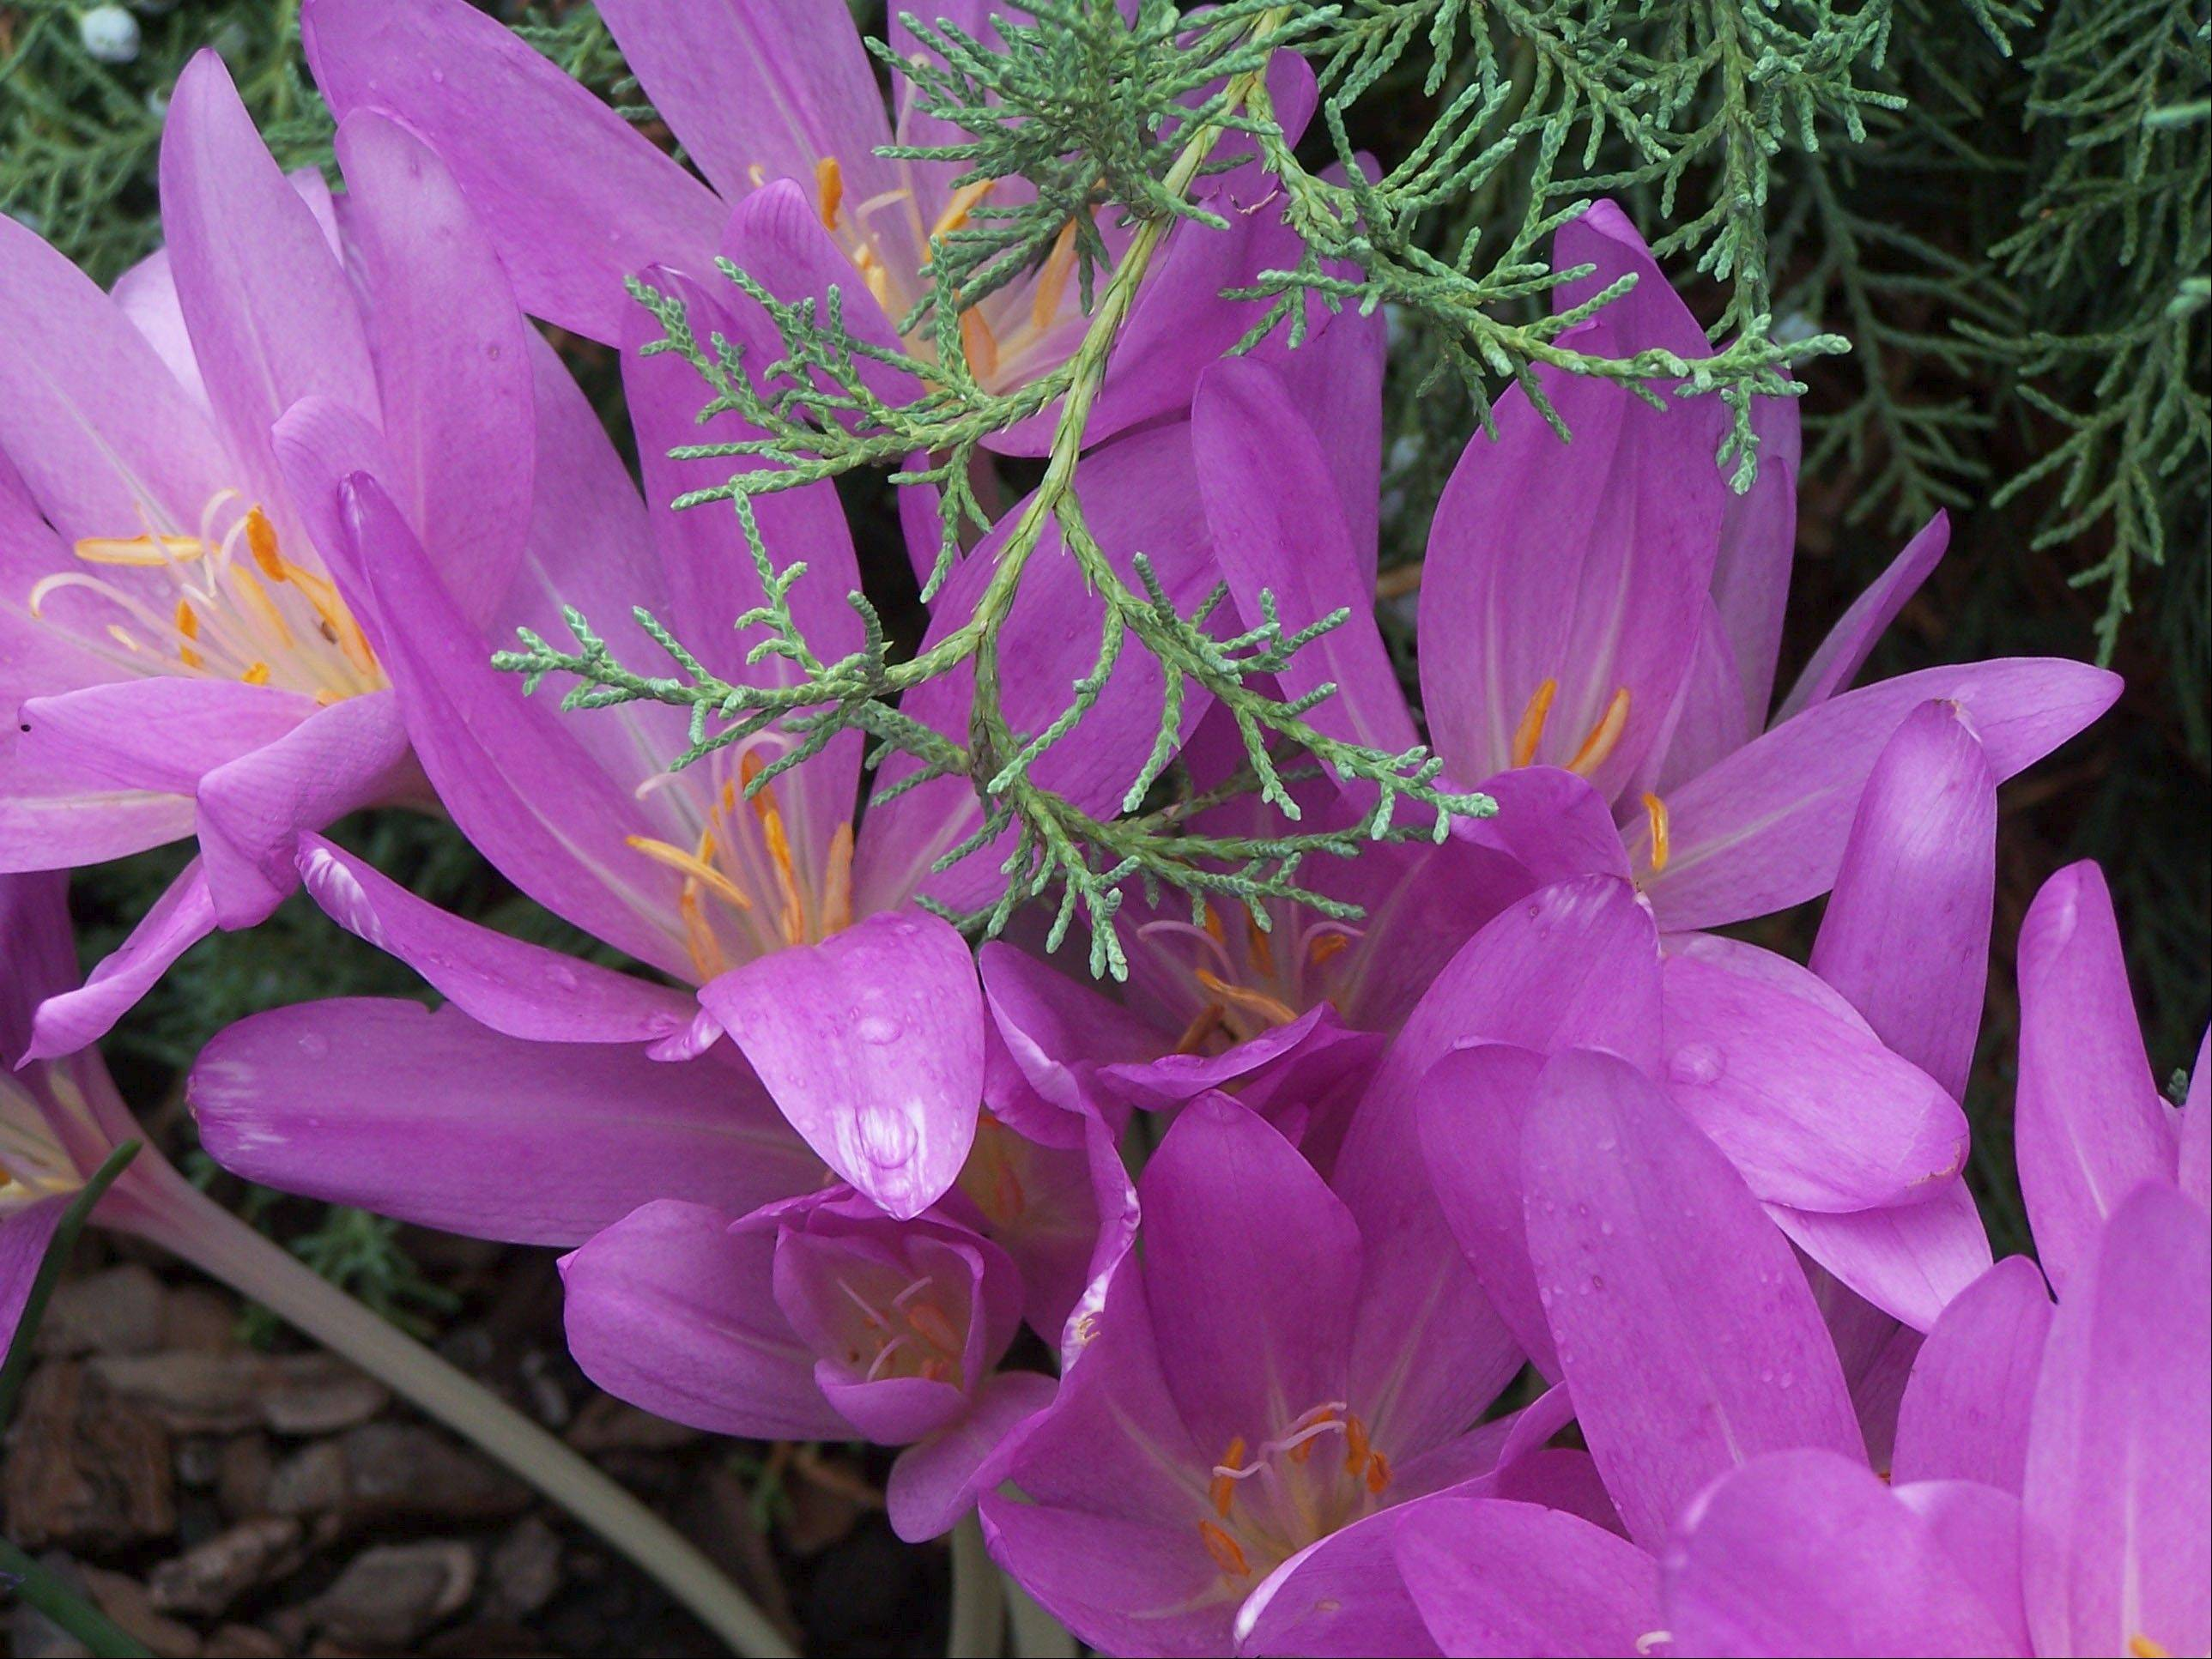 Colchicum brightens the September garden.